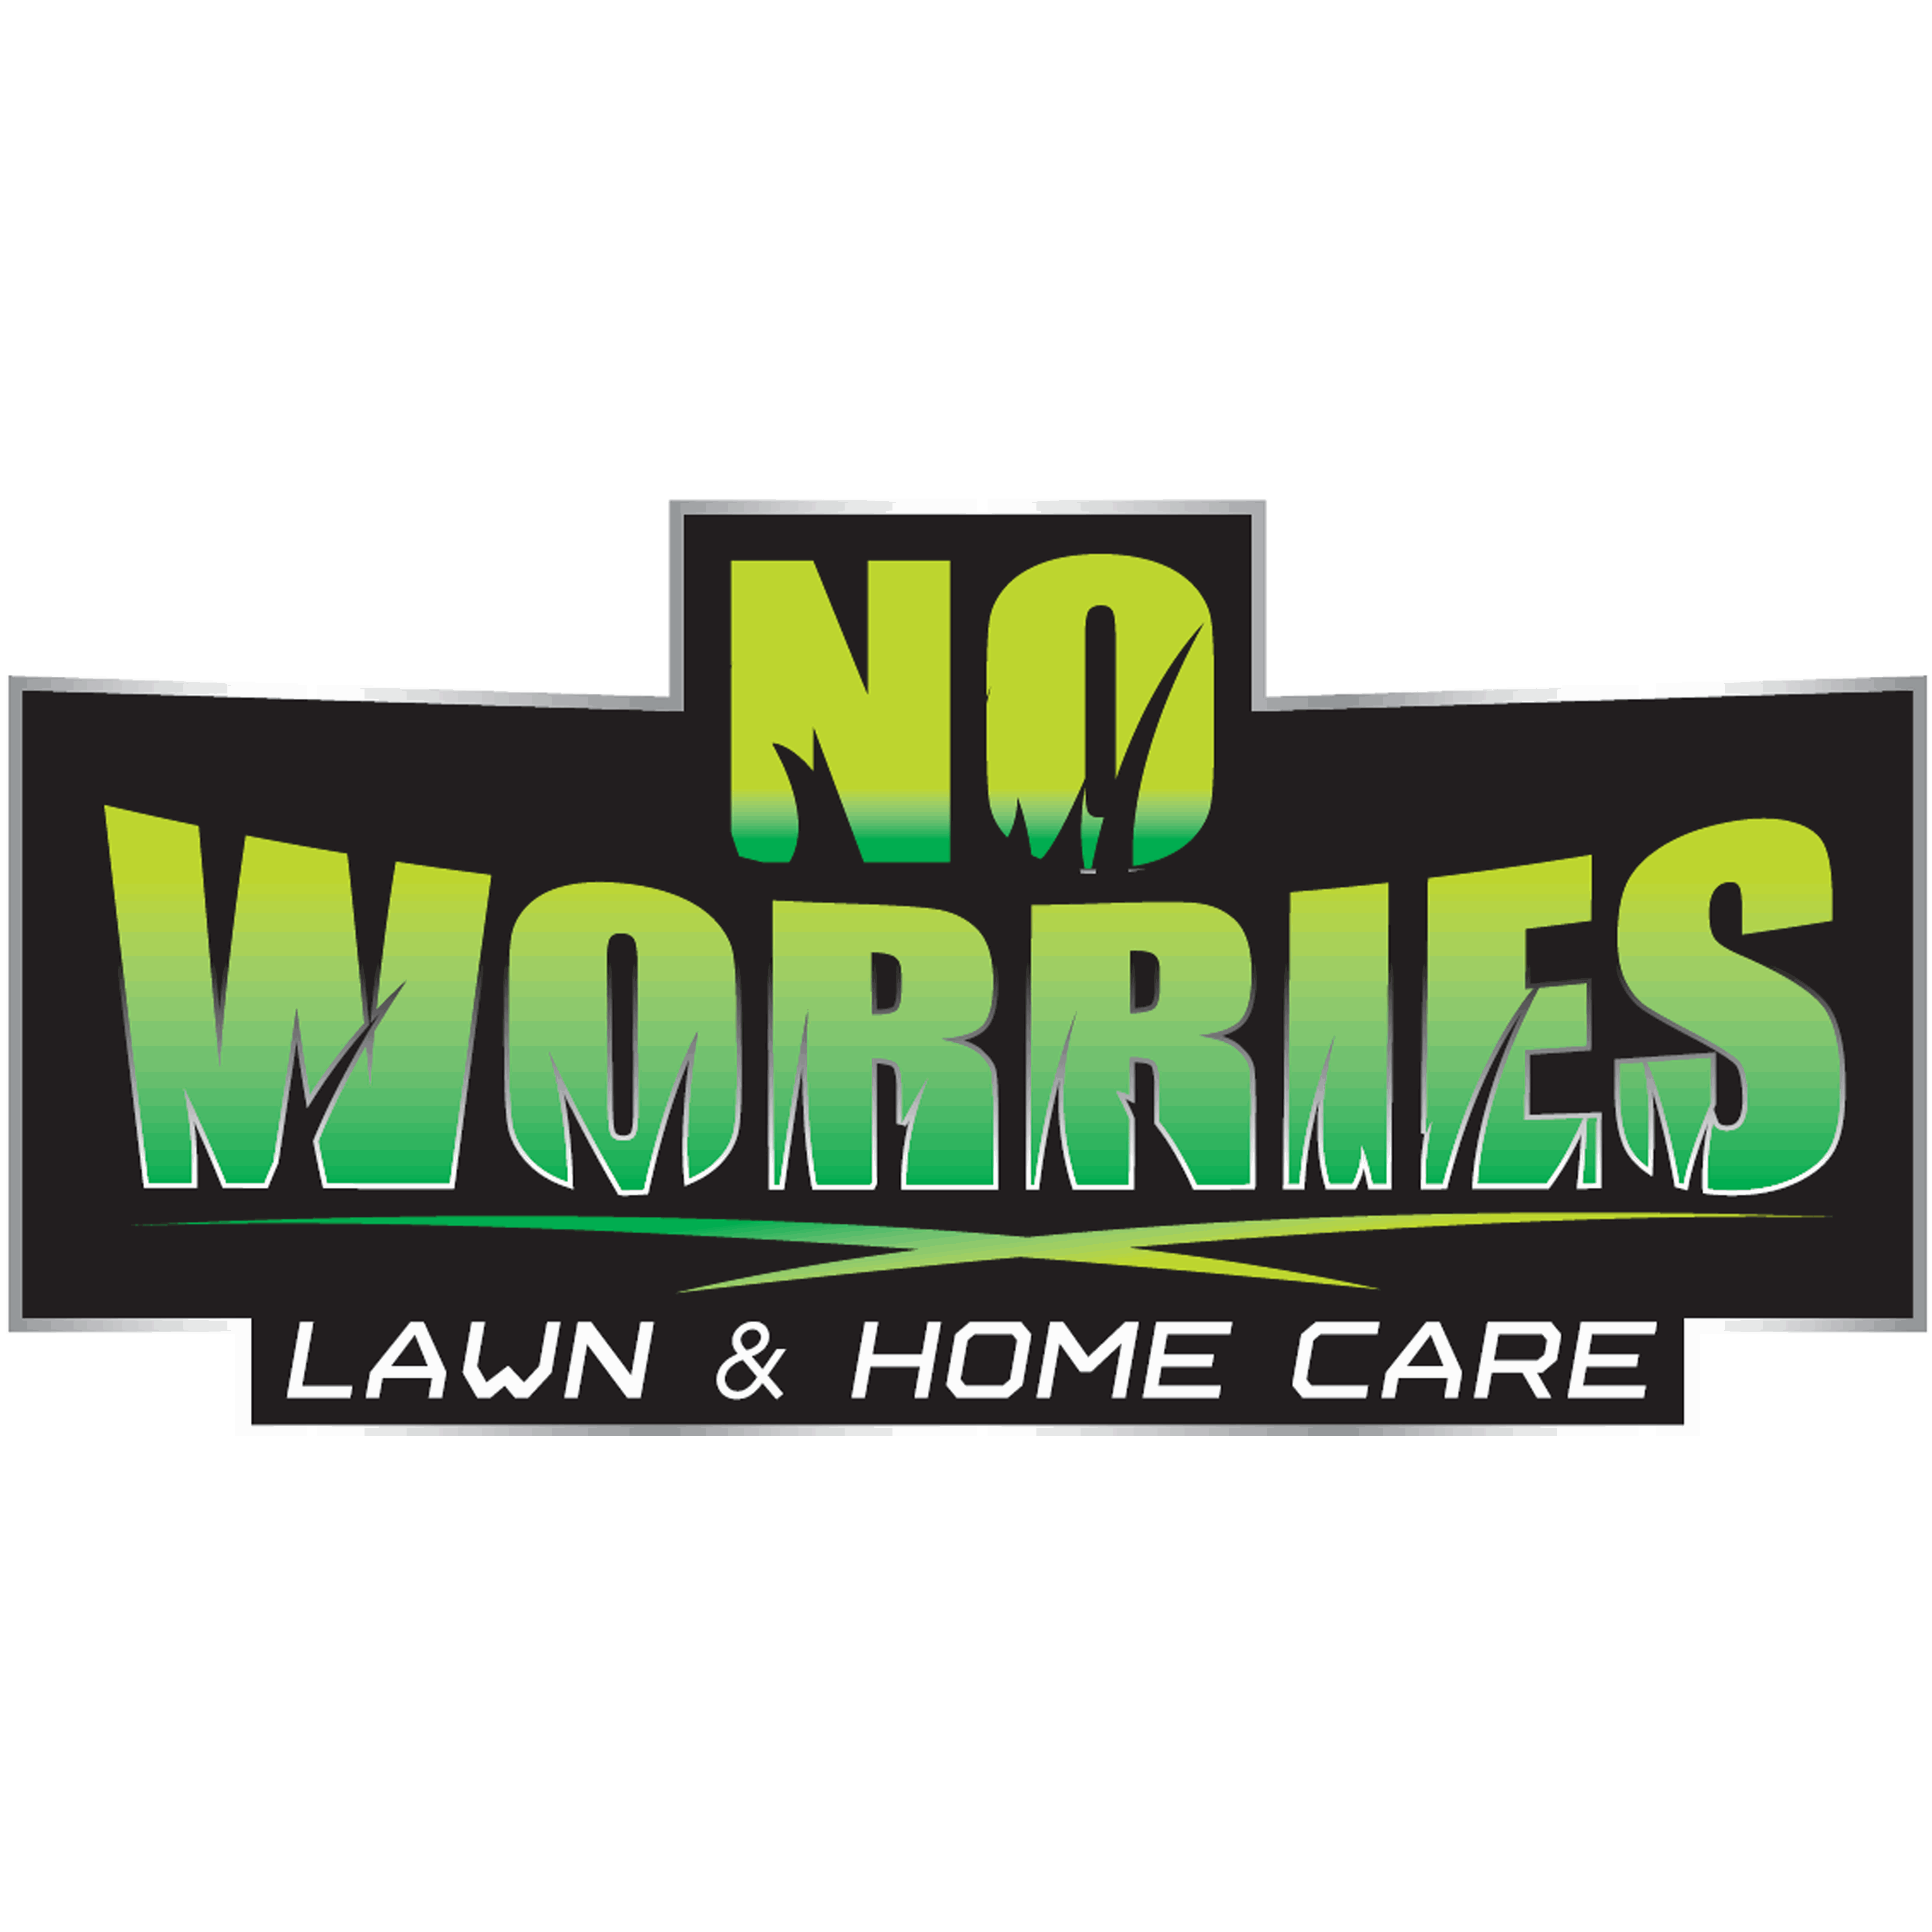 NoWORRIES INSURANCE shares 3 coupon codes and promo codes. Get 50% off discount and save money online.